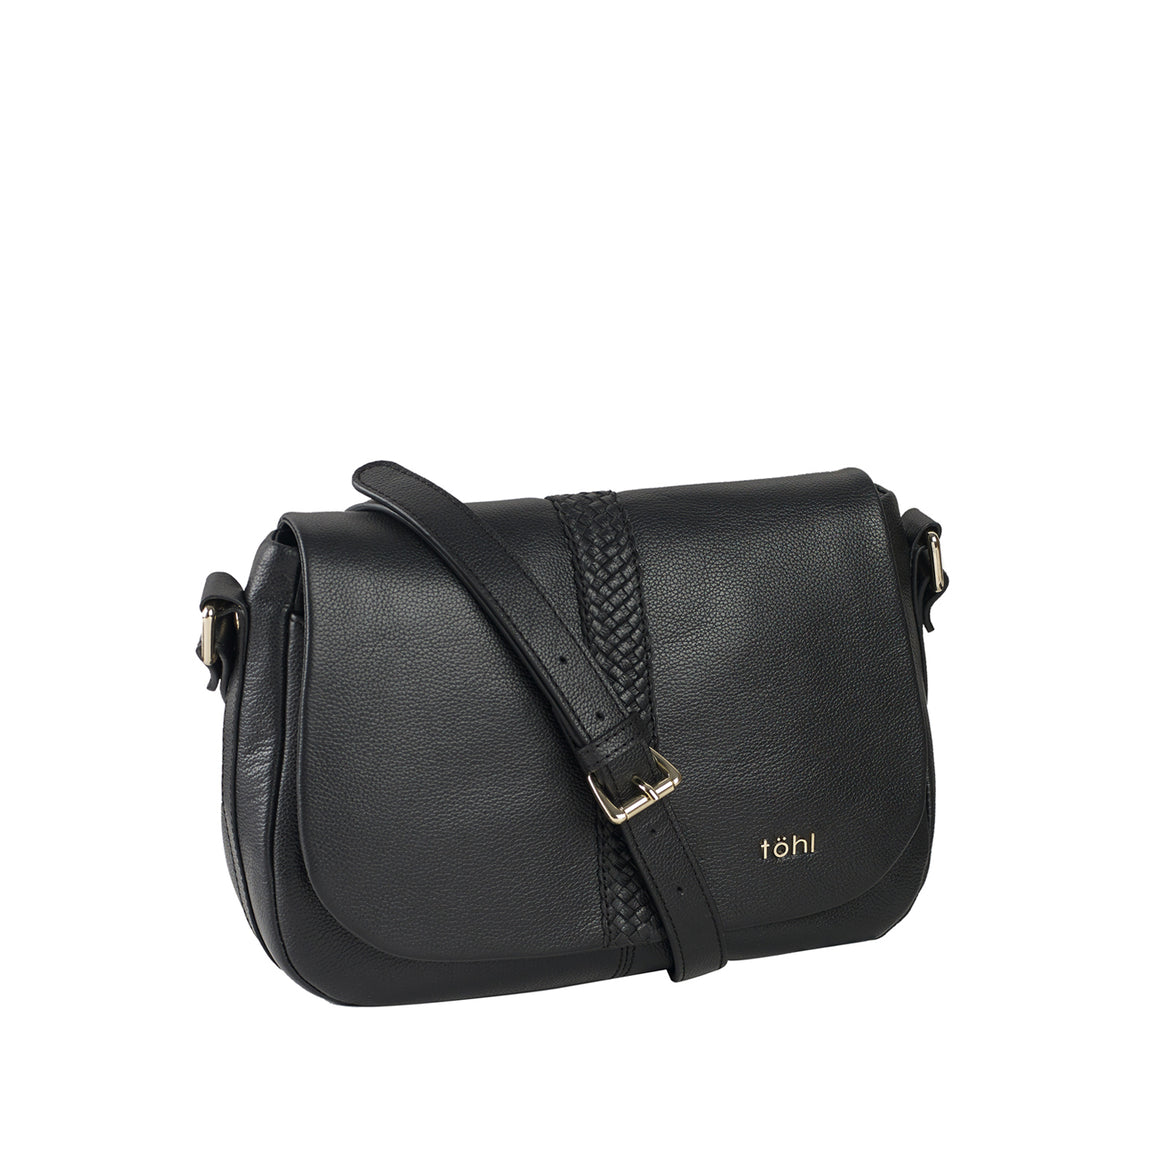 SG 0008 - TOHL CARA WOMEN'S SLING BAG - CHARCOAL BLACK